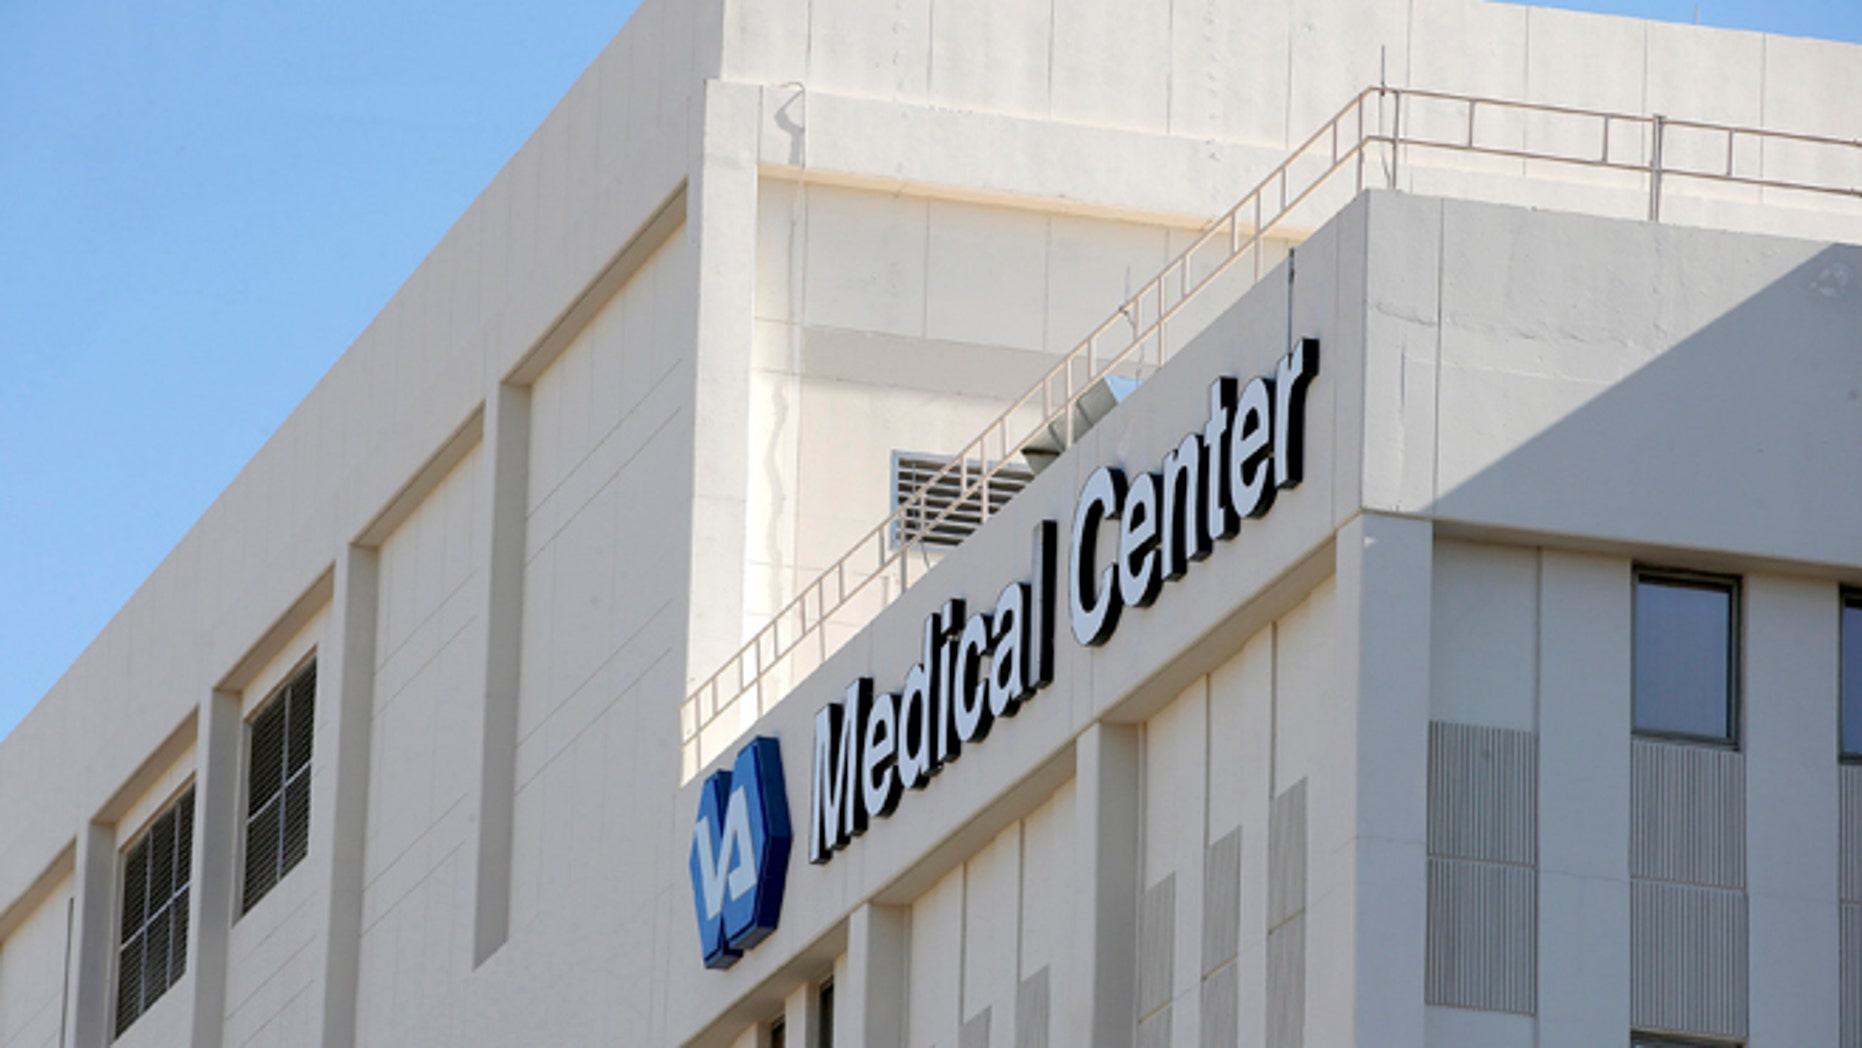 Problems keep piling up for Veterans Affairs Department